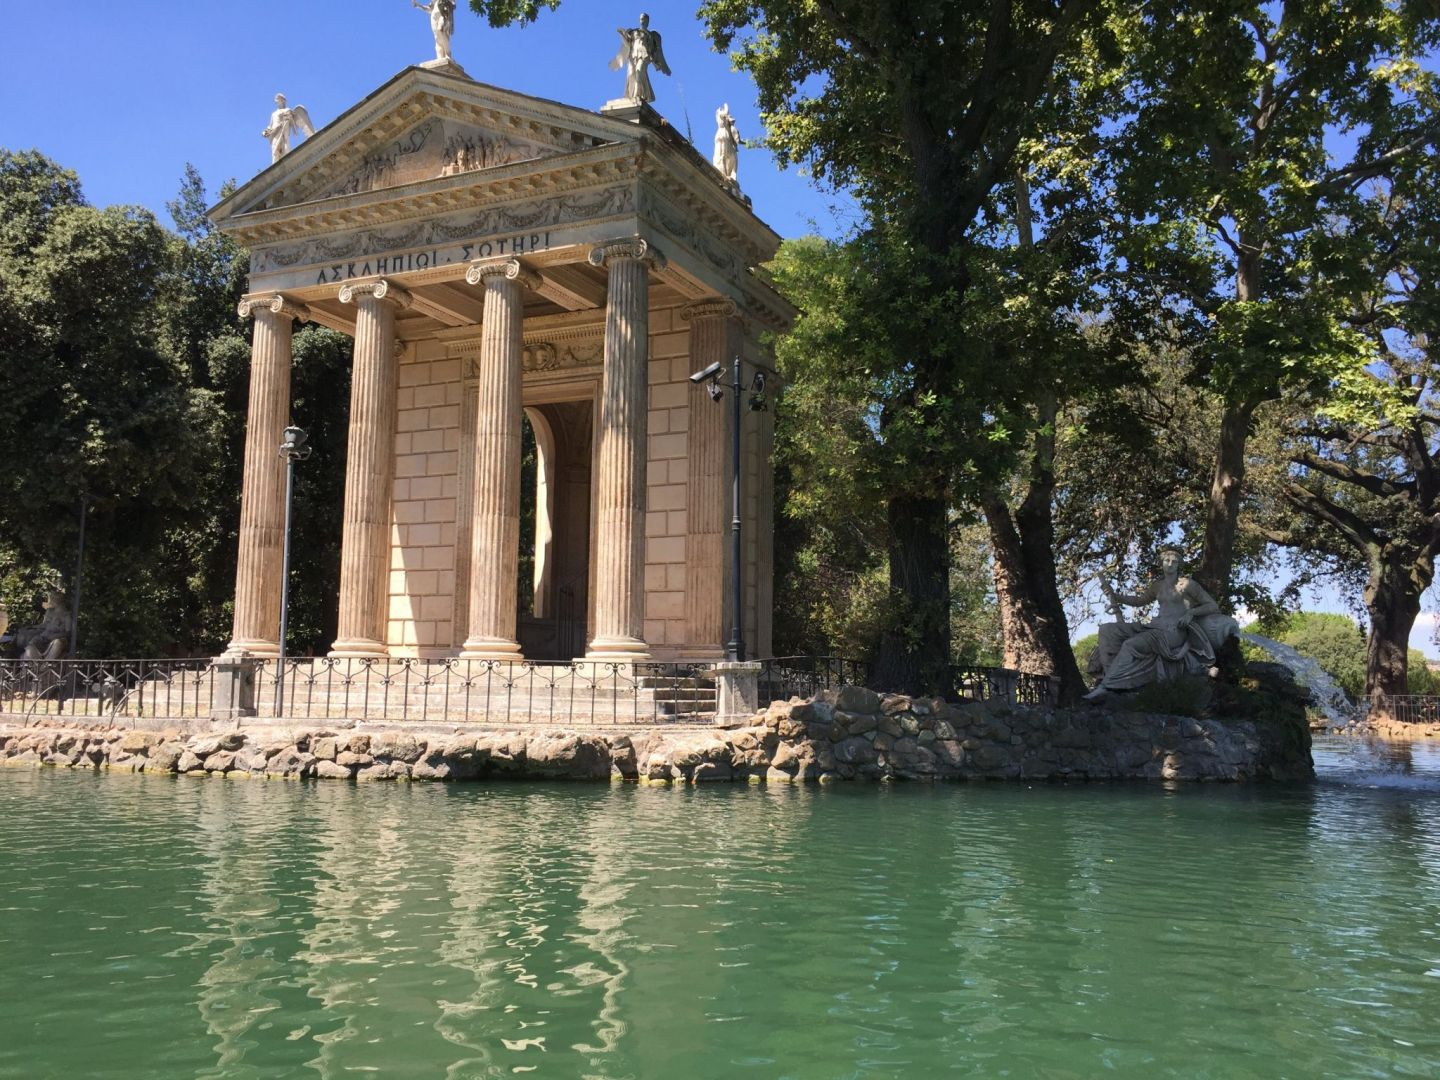 Temple of Asclepius, Rome